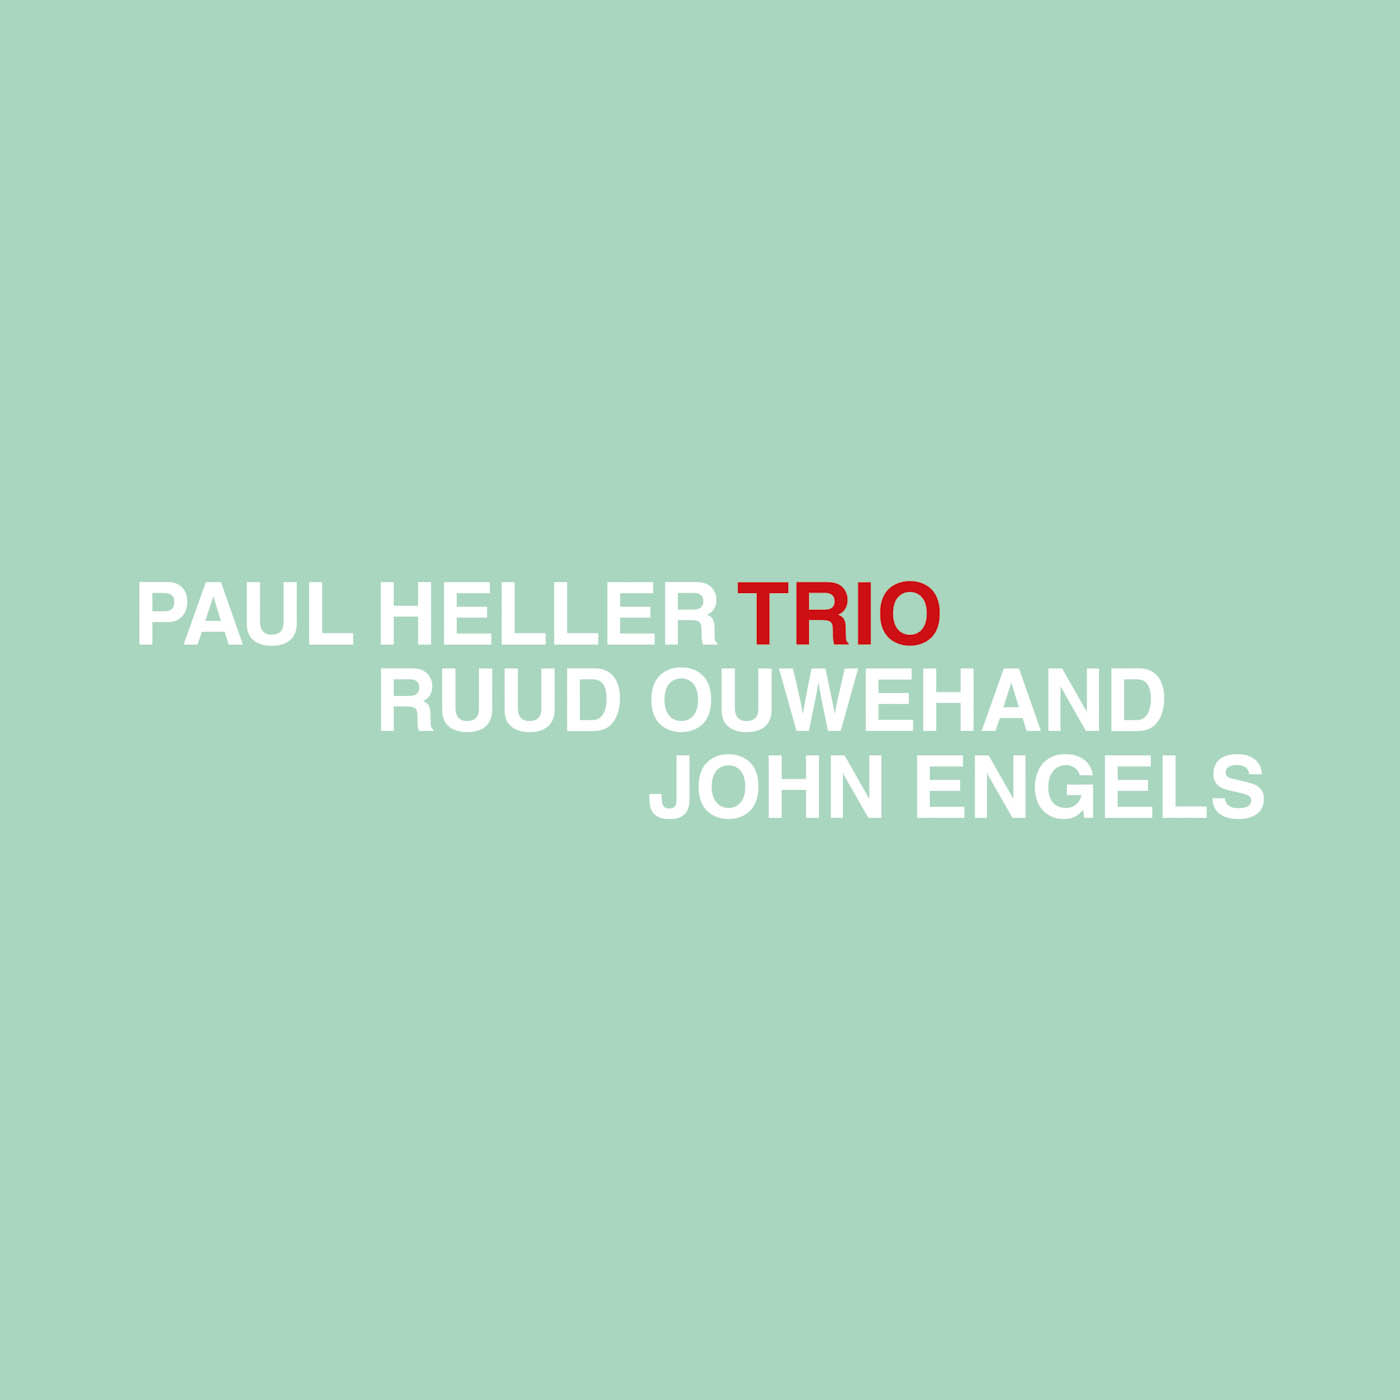 Paul-Heller-Trio-2015-Digitalvertrieb-Print.jpg